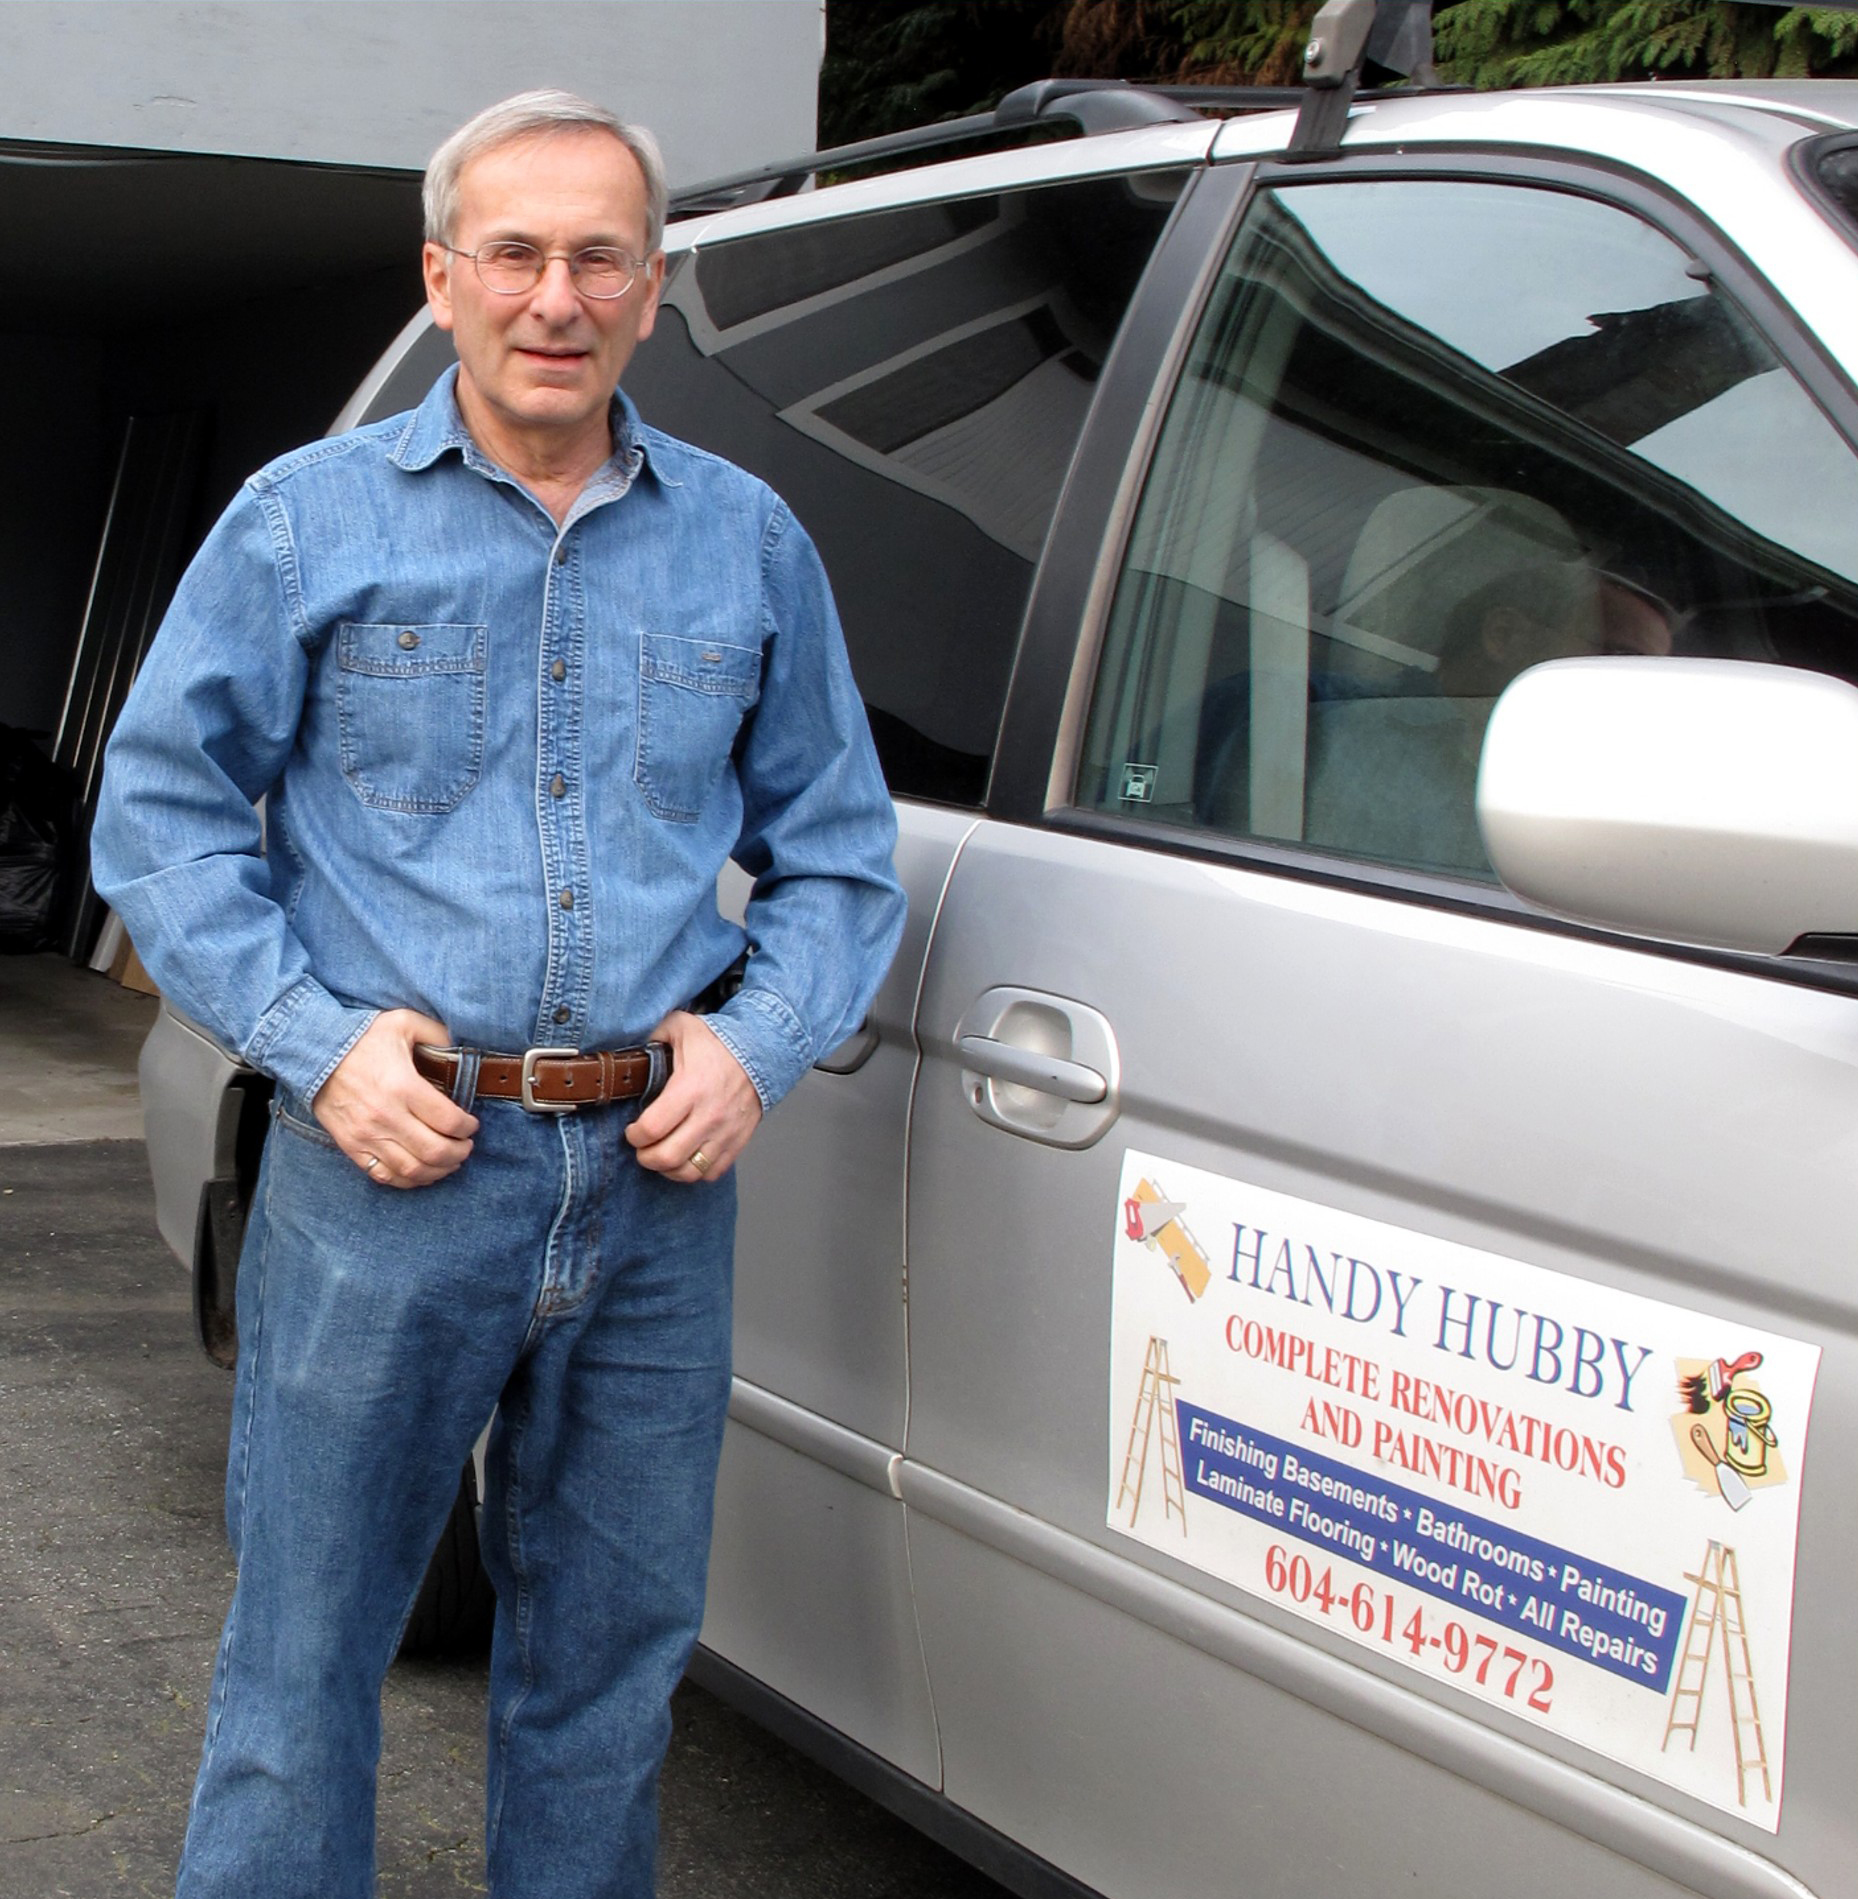 Man near a Van - Best Handy Hubby Renovation and Painting Services in Coquitlam, BC